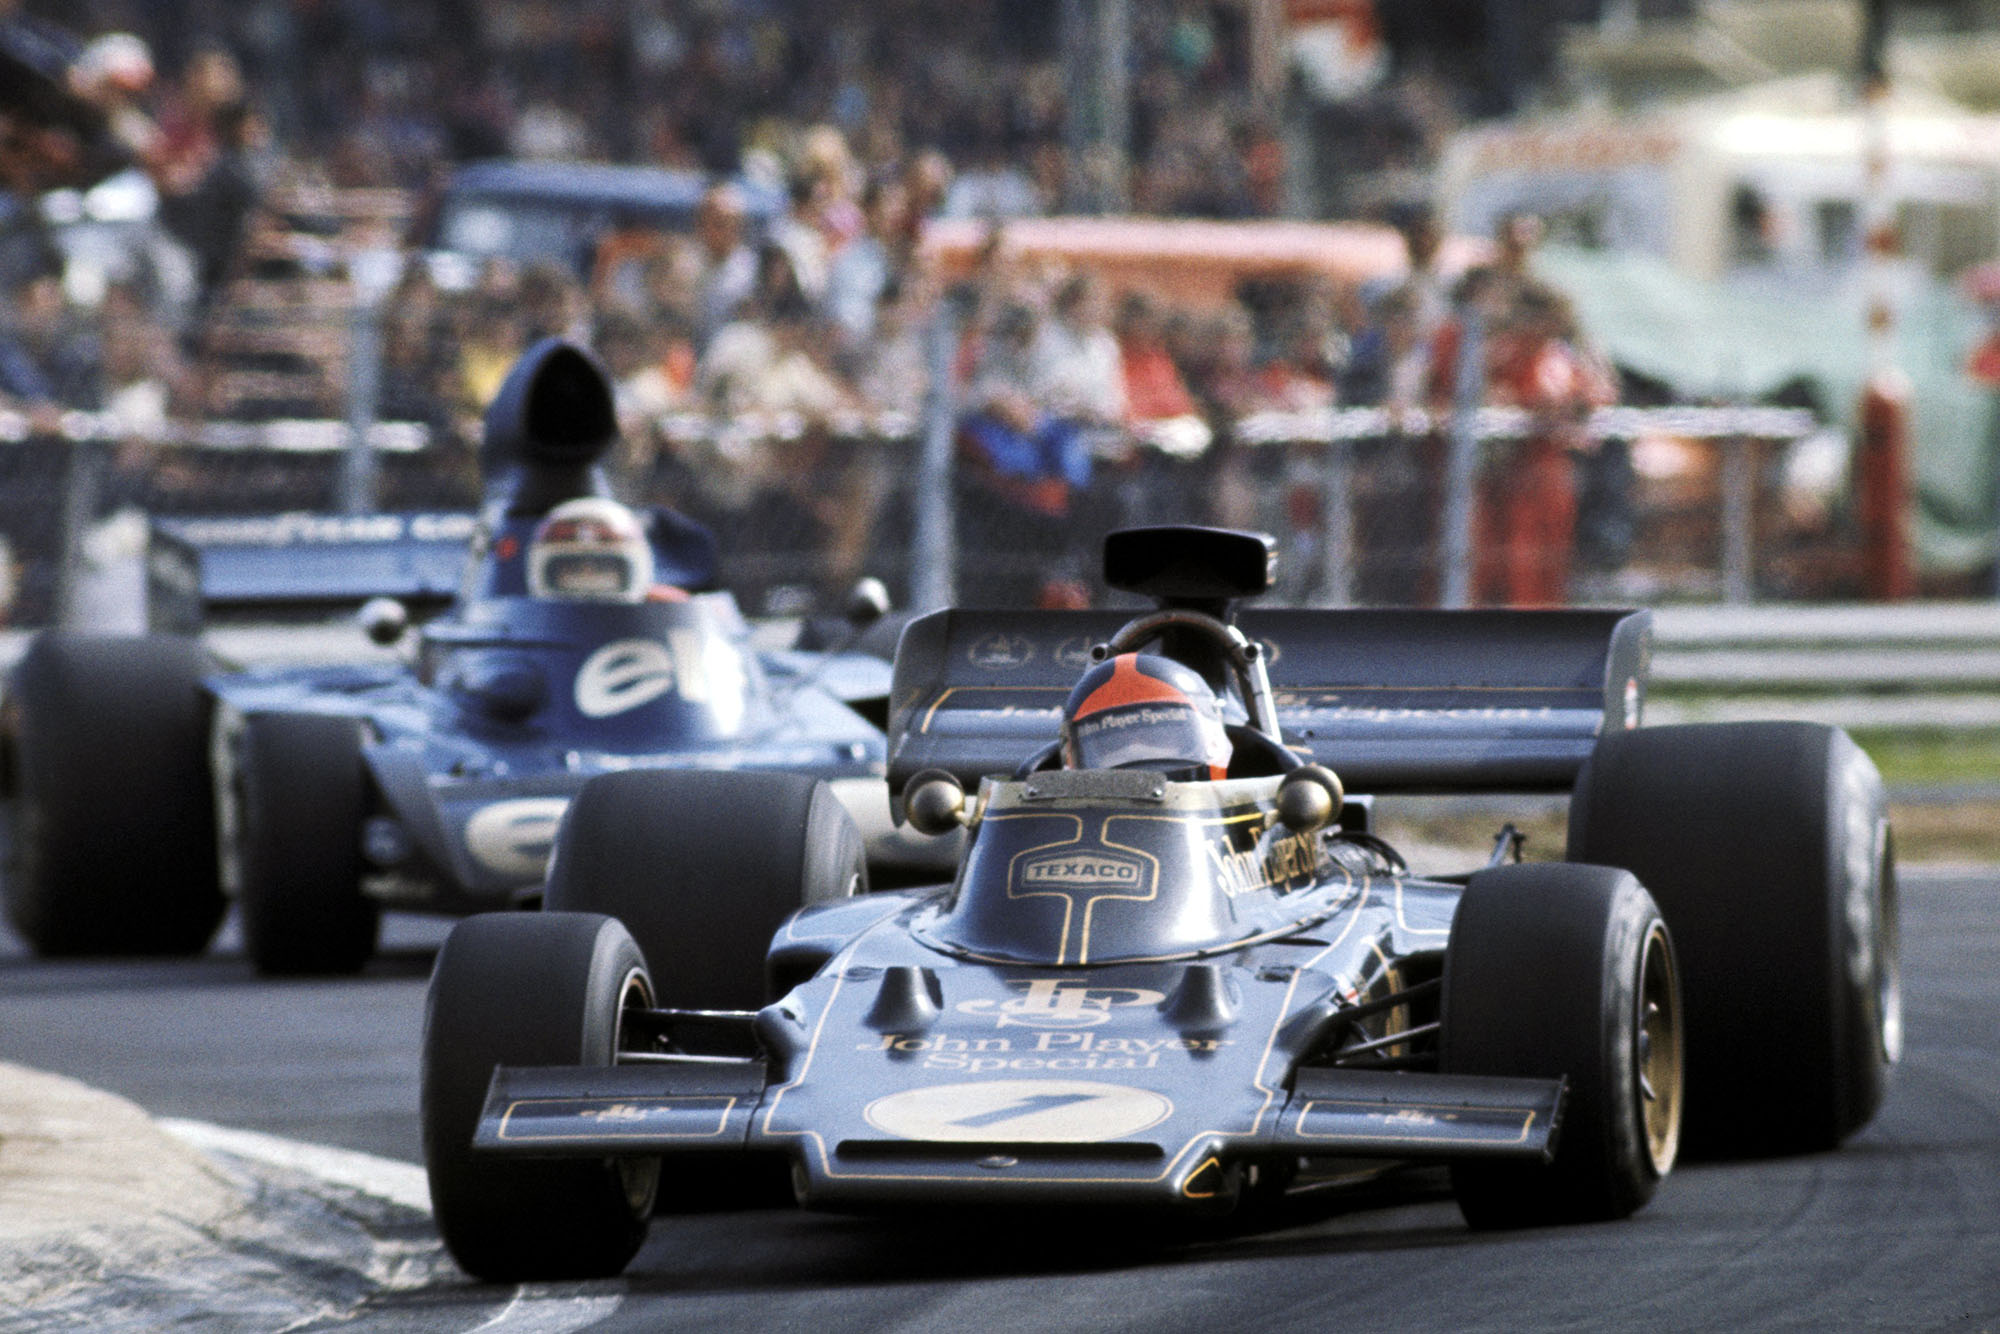 Emerson Fittipaldi (Lotus) is chased by Jackie Stewart (Tyrrell) at the 1973 Belgian Grand Prix.